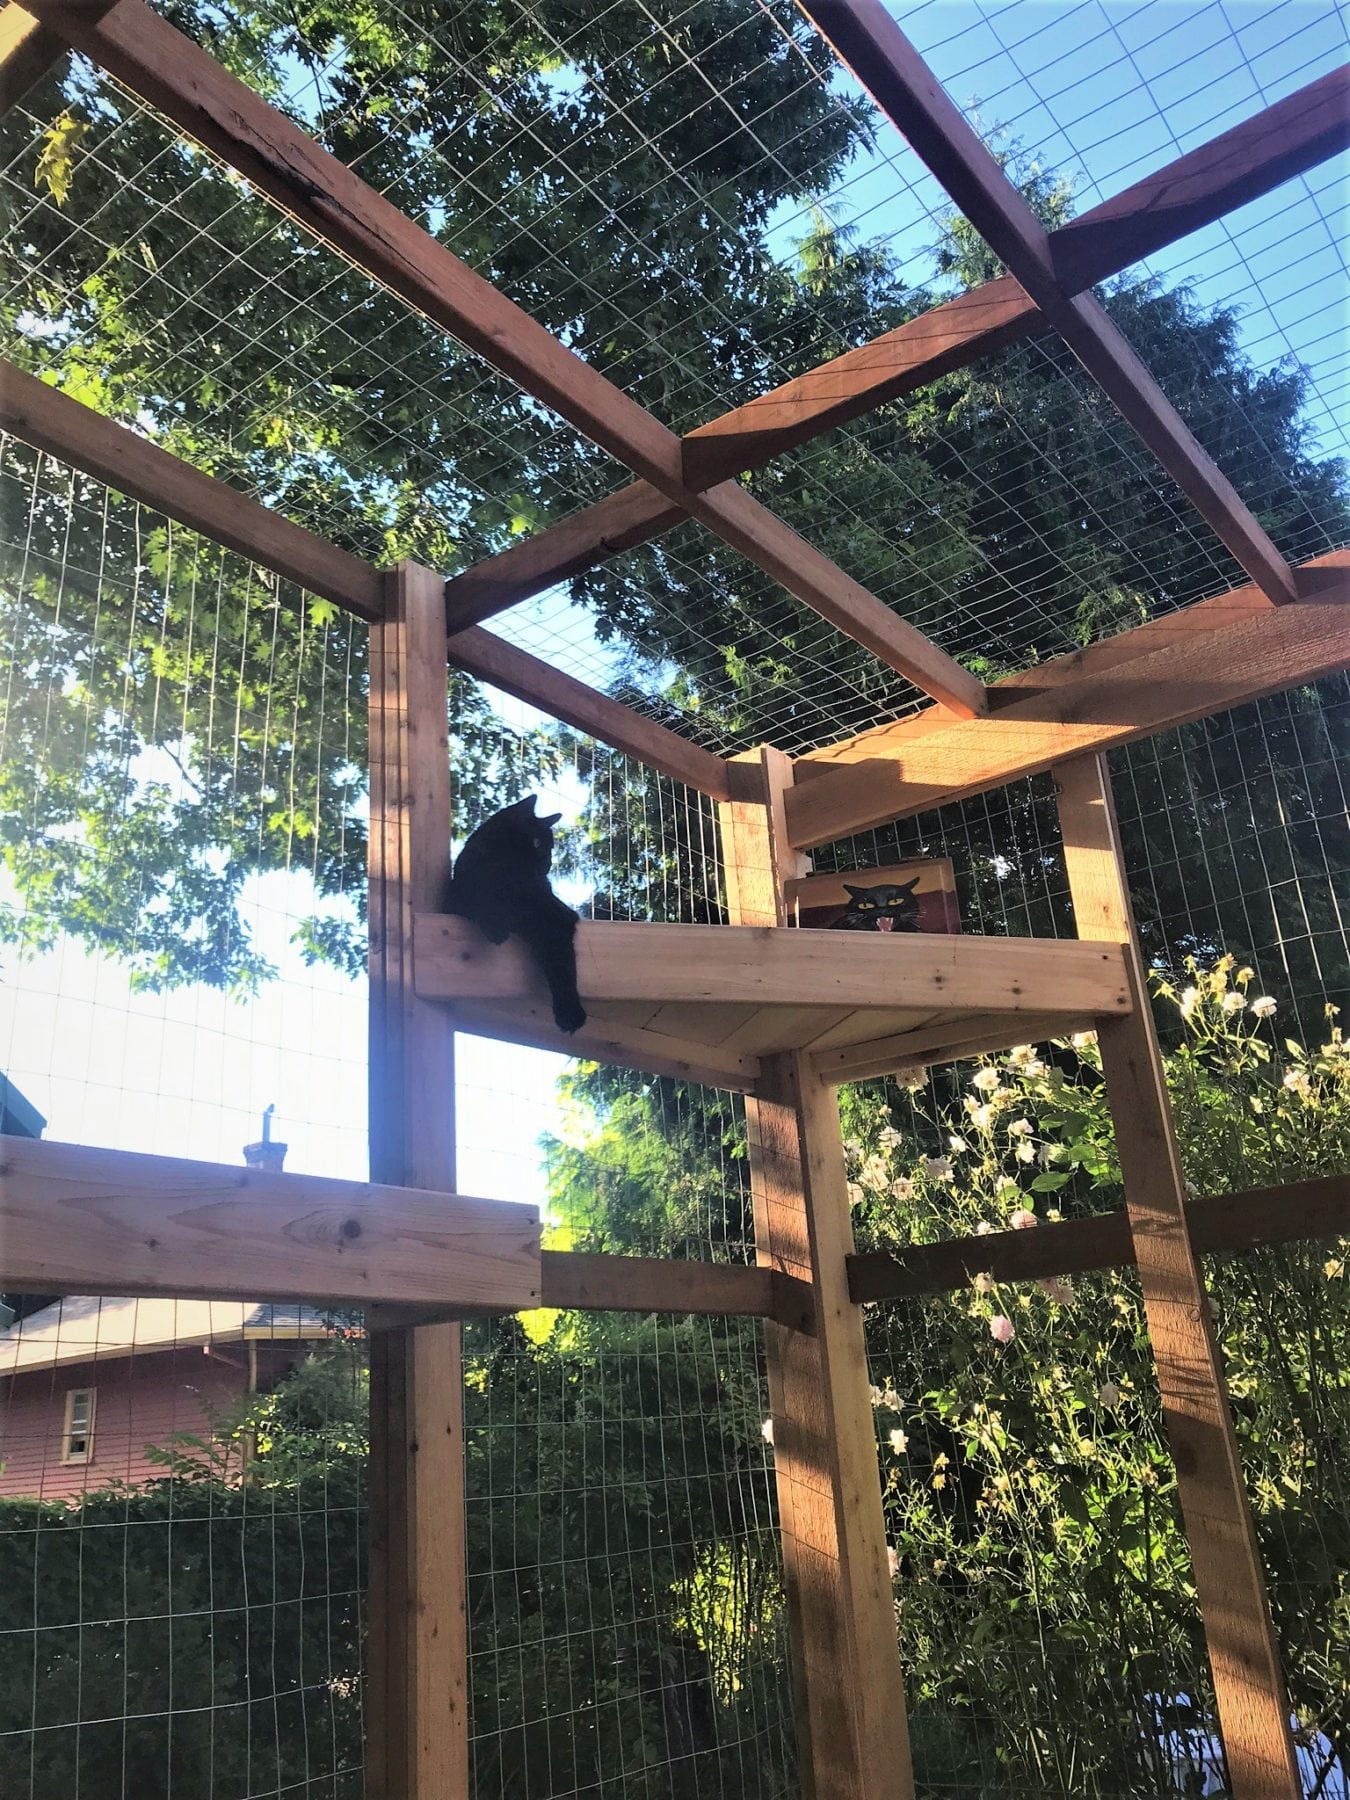 backyard catio